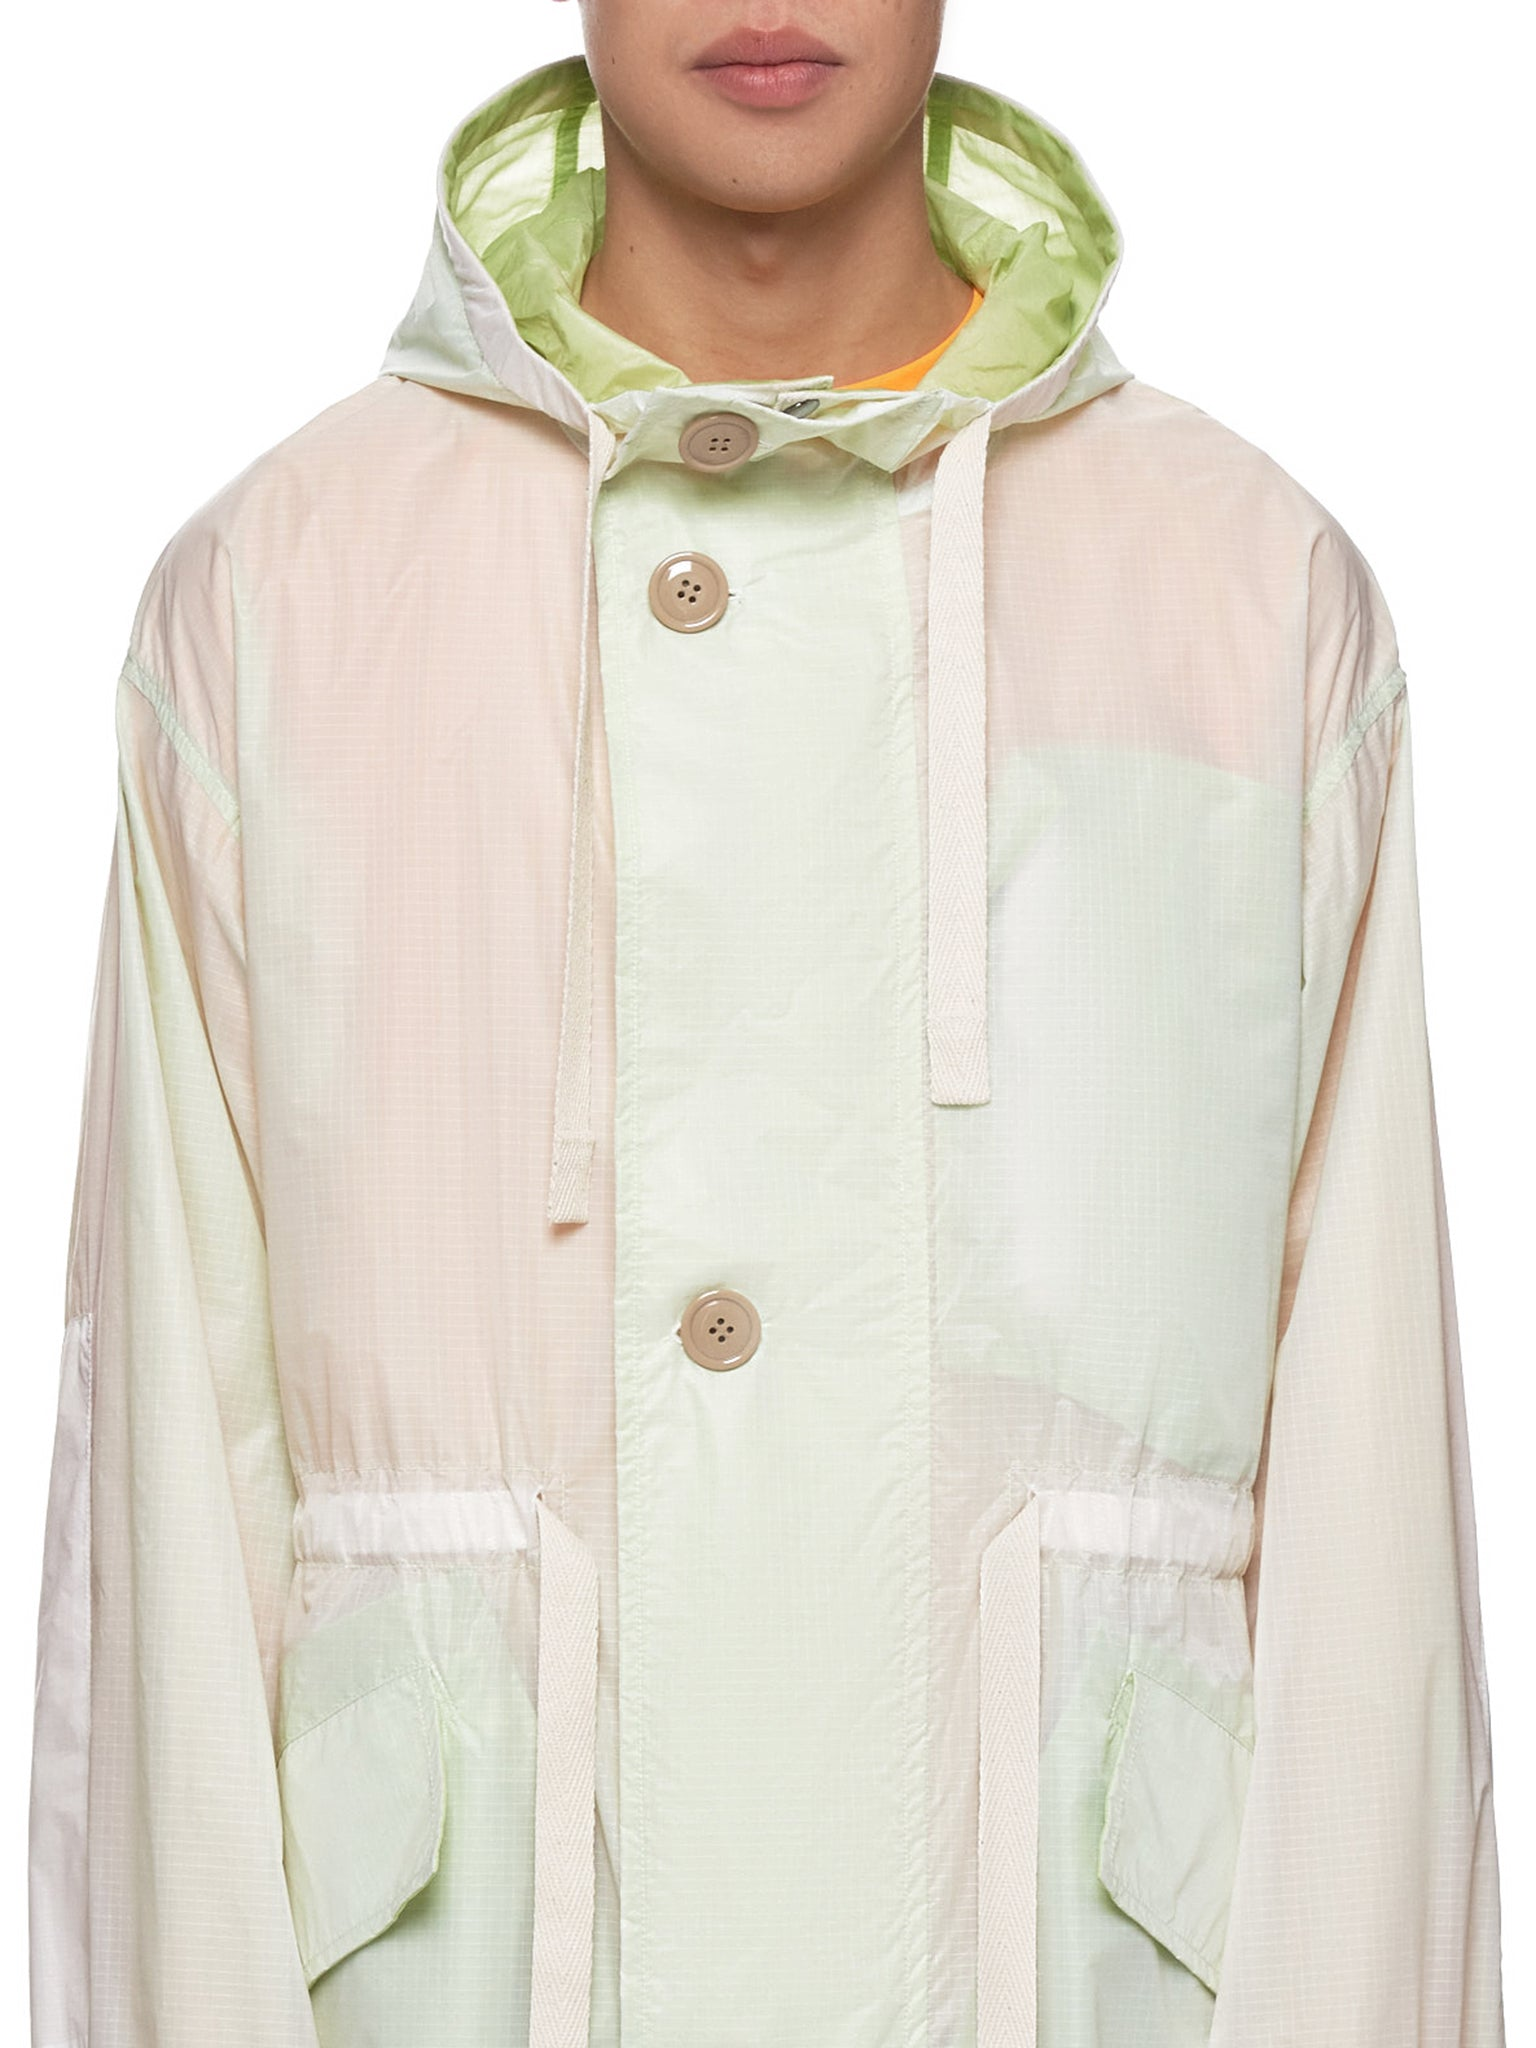 Acne Studios Coat - Hlorenzo Detail 2